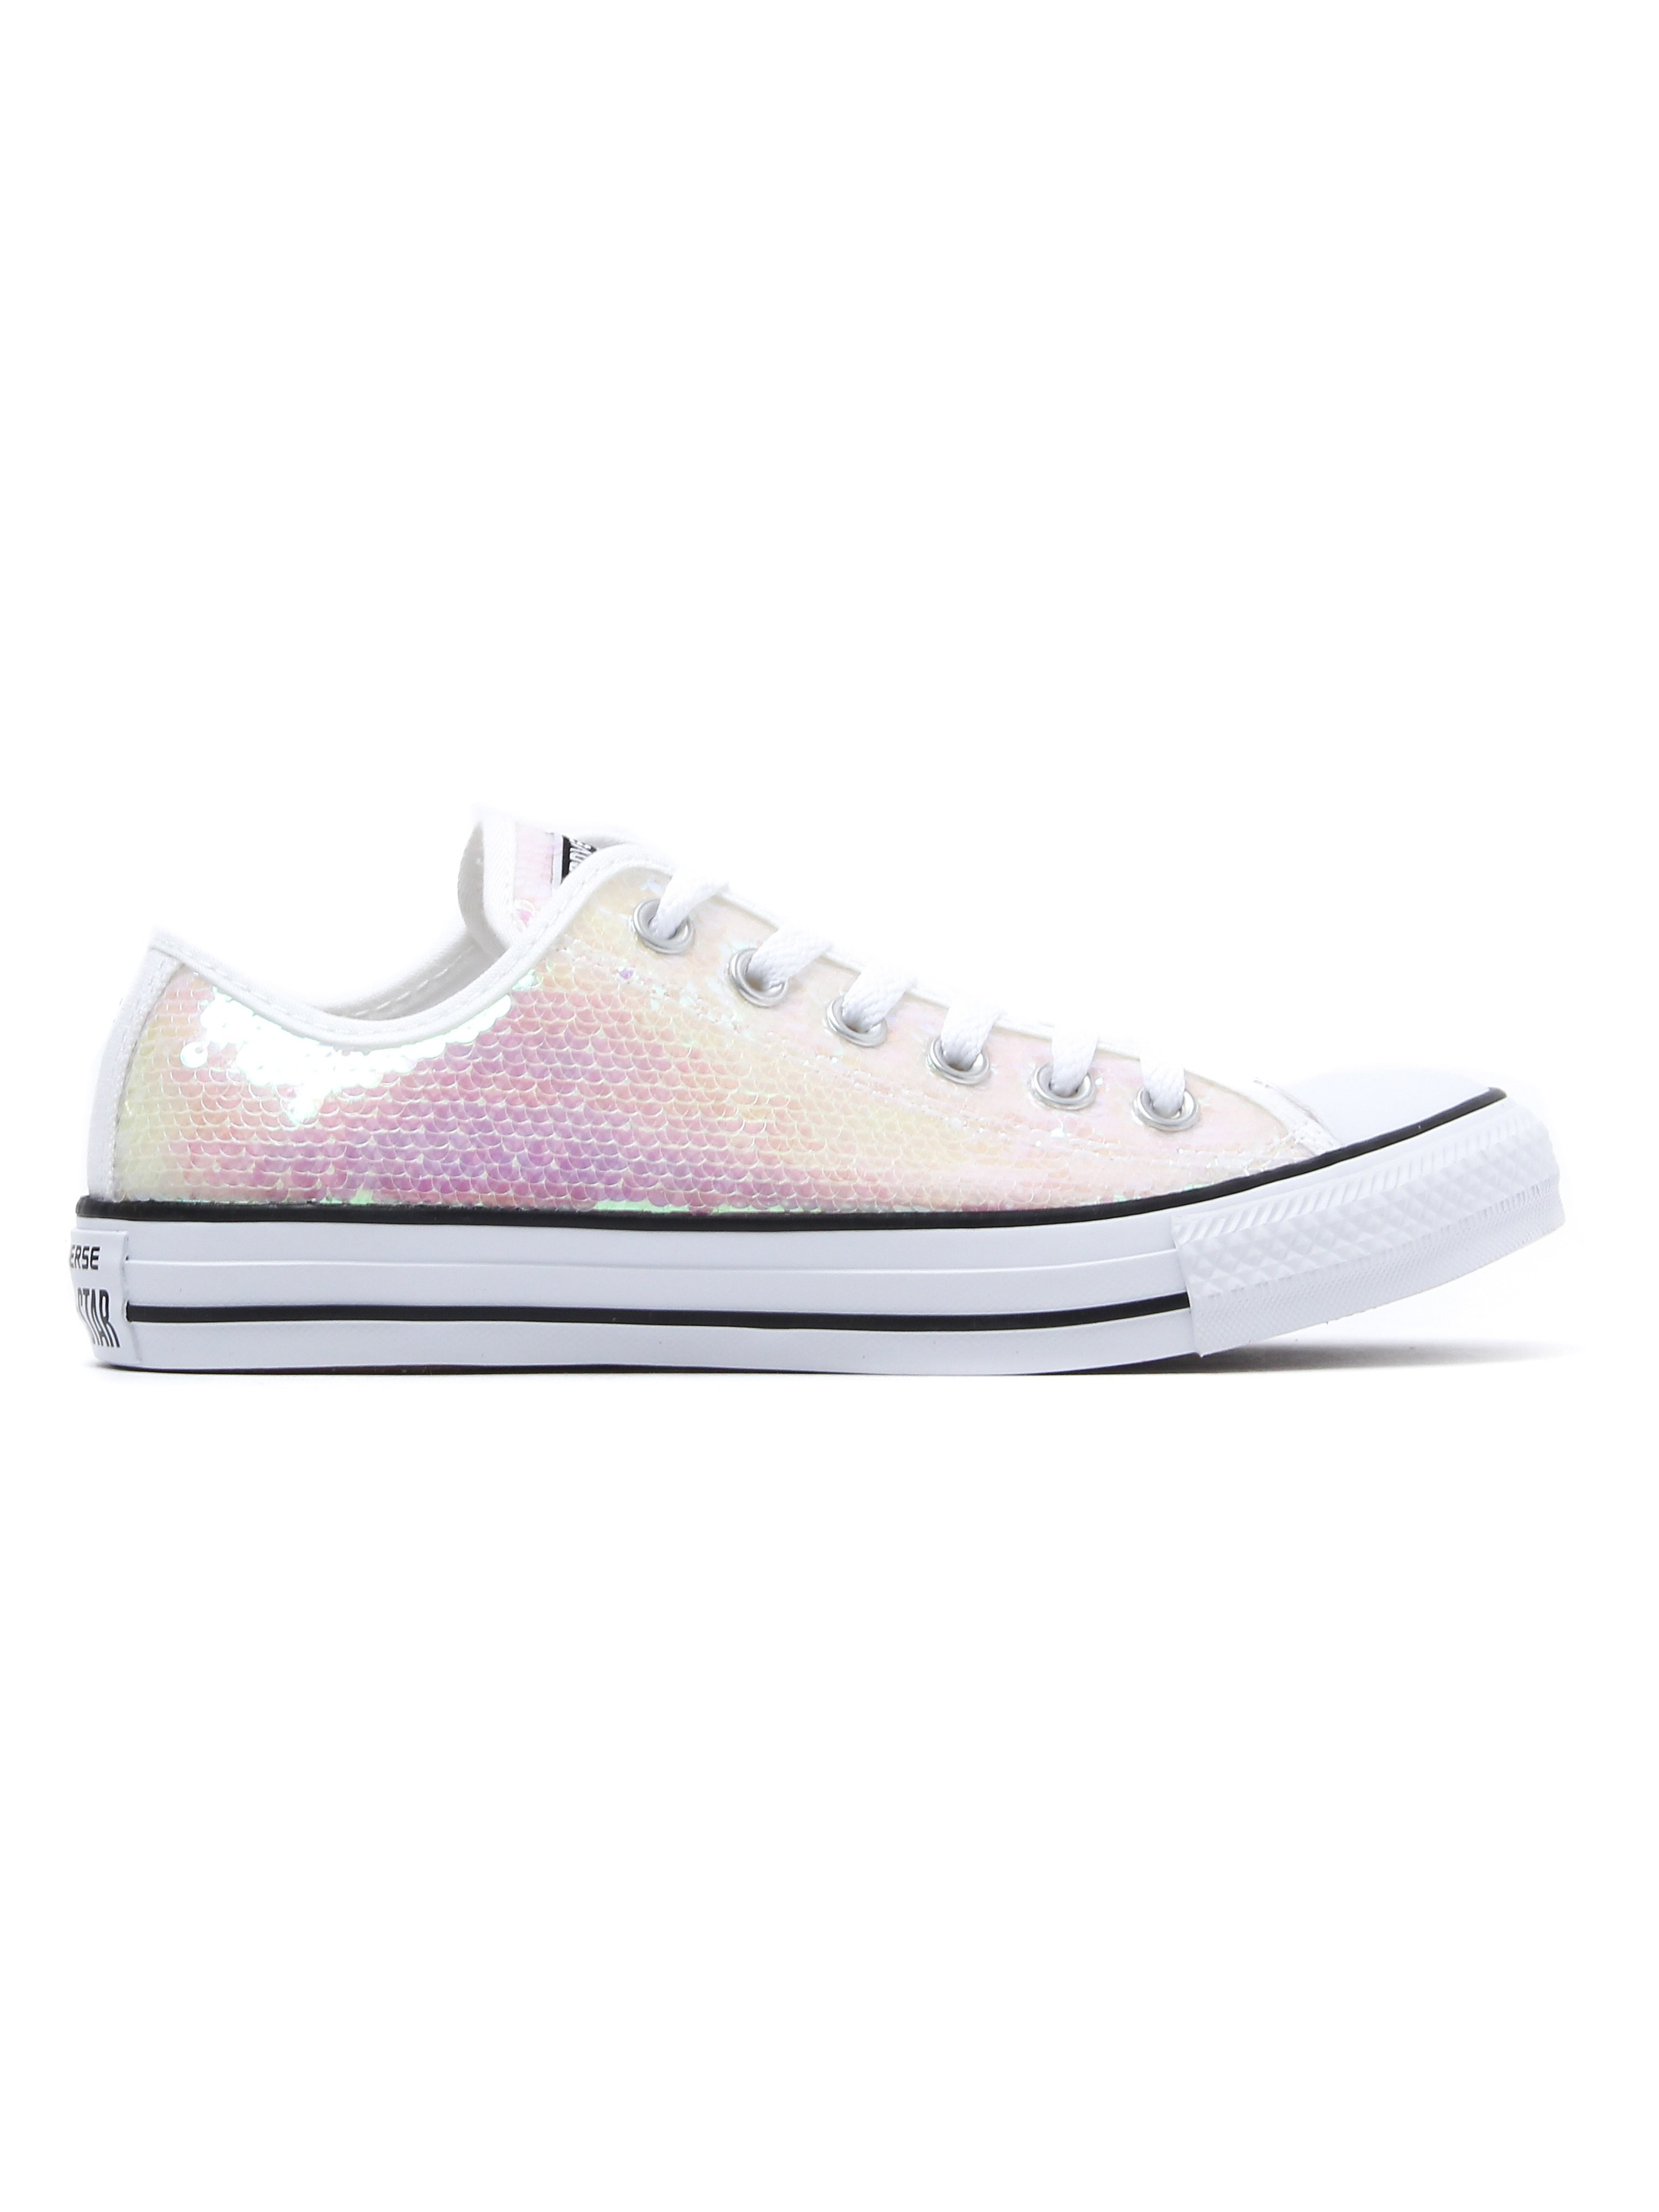 Converse Women's Chuck Taylor All Star OX Trainers - White Sequin